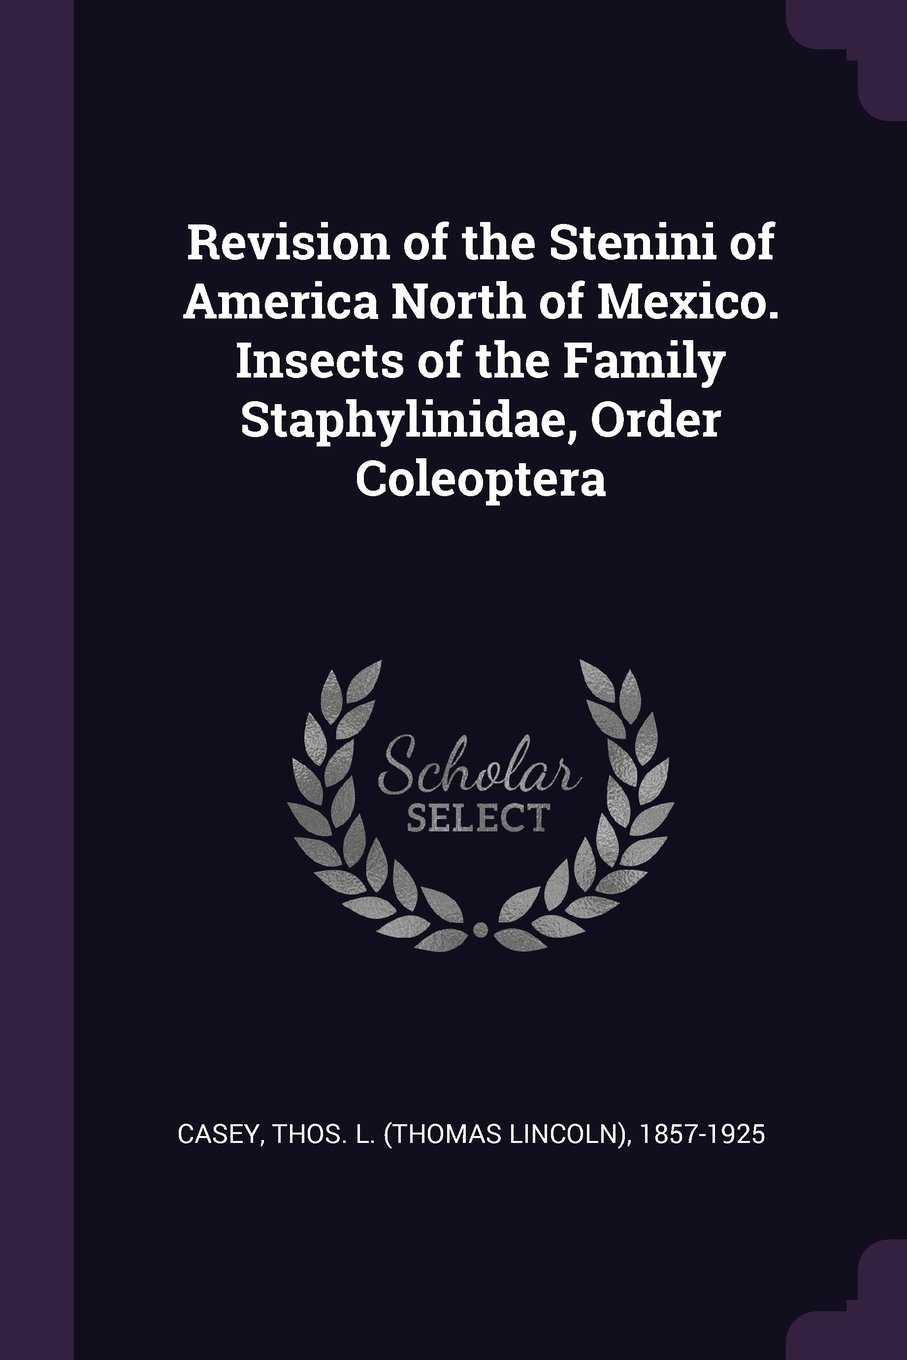 Revision of the Stenini of America North of Mexico. Insects of the Family Staphylinidae, Order Coleoptera pdf